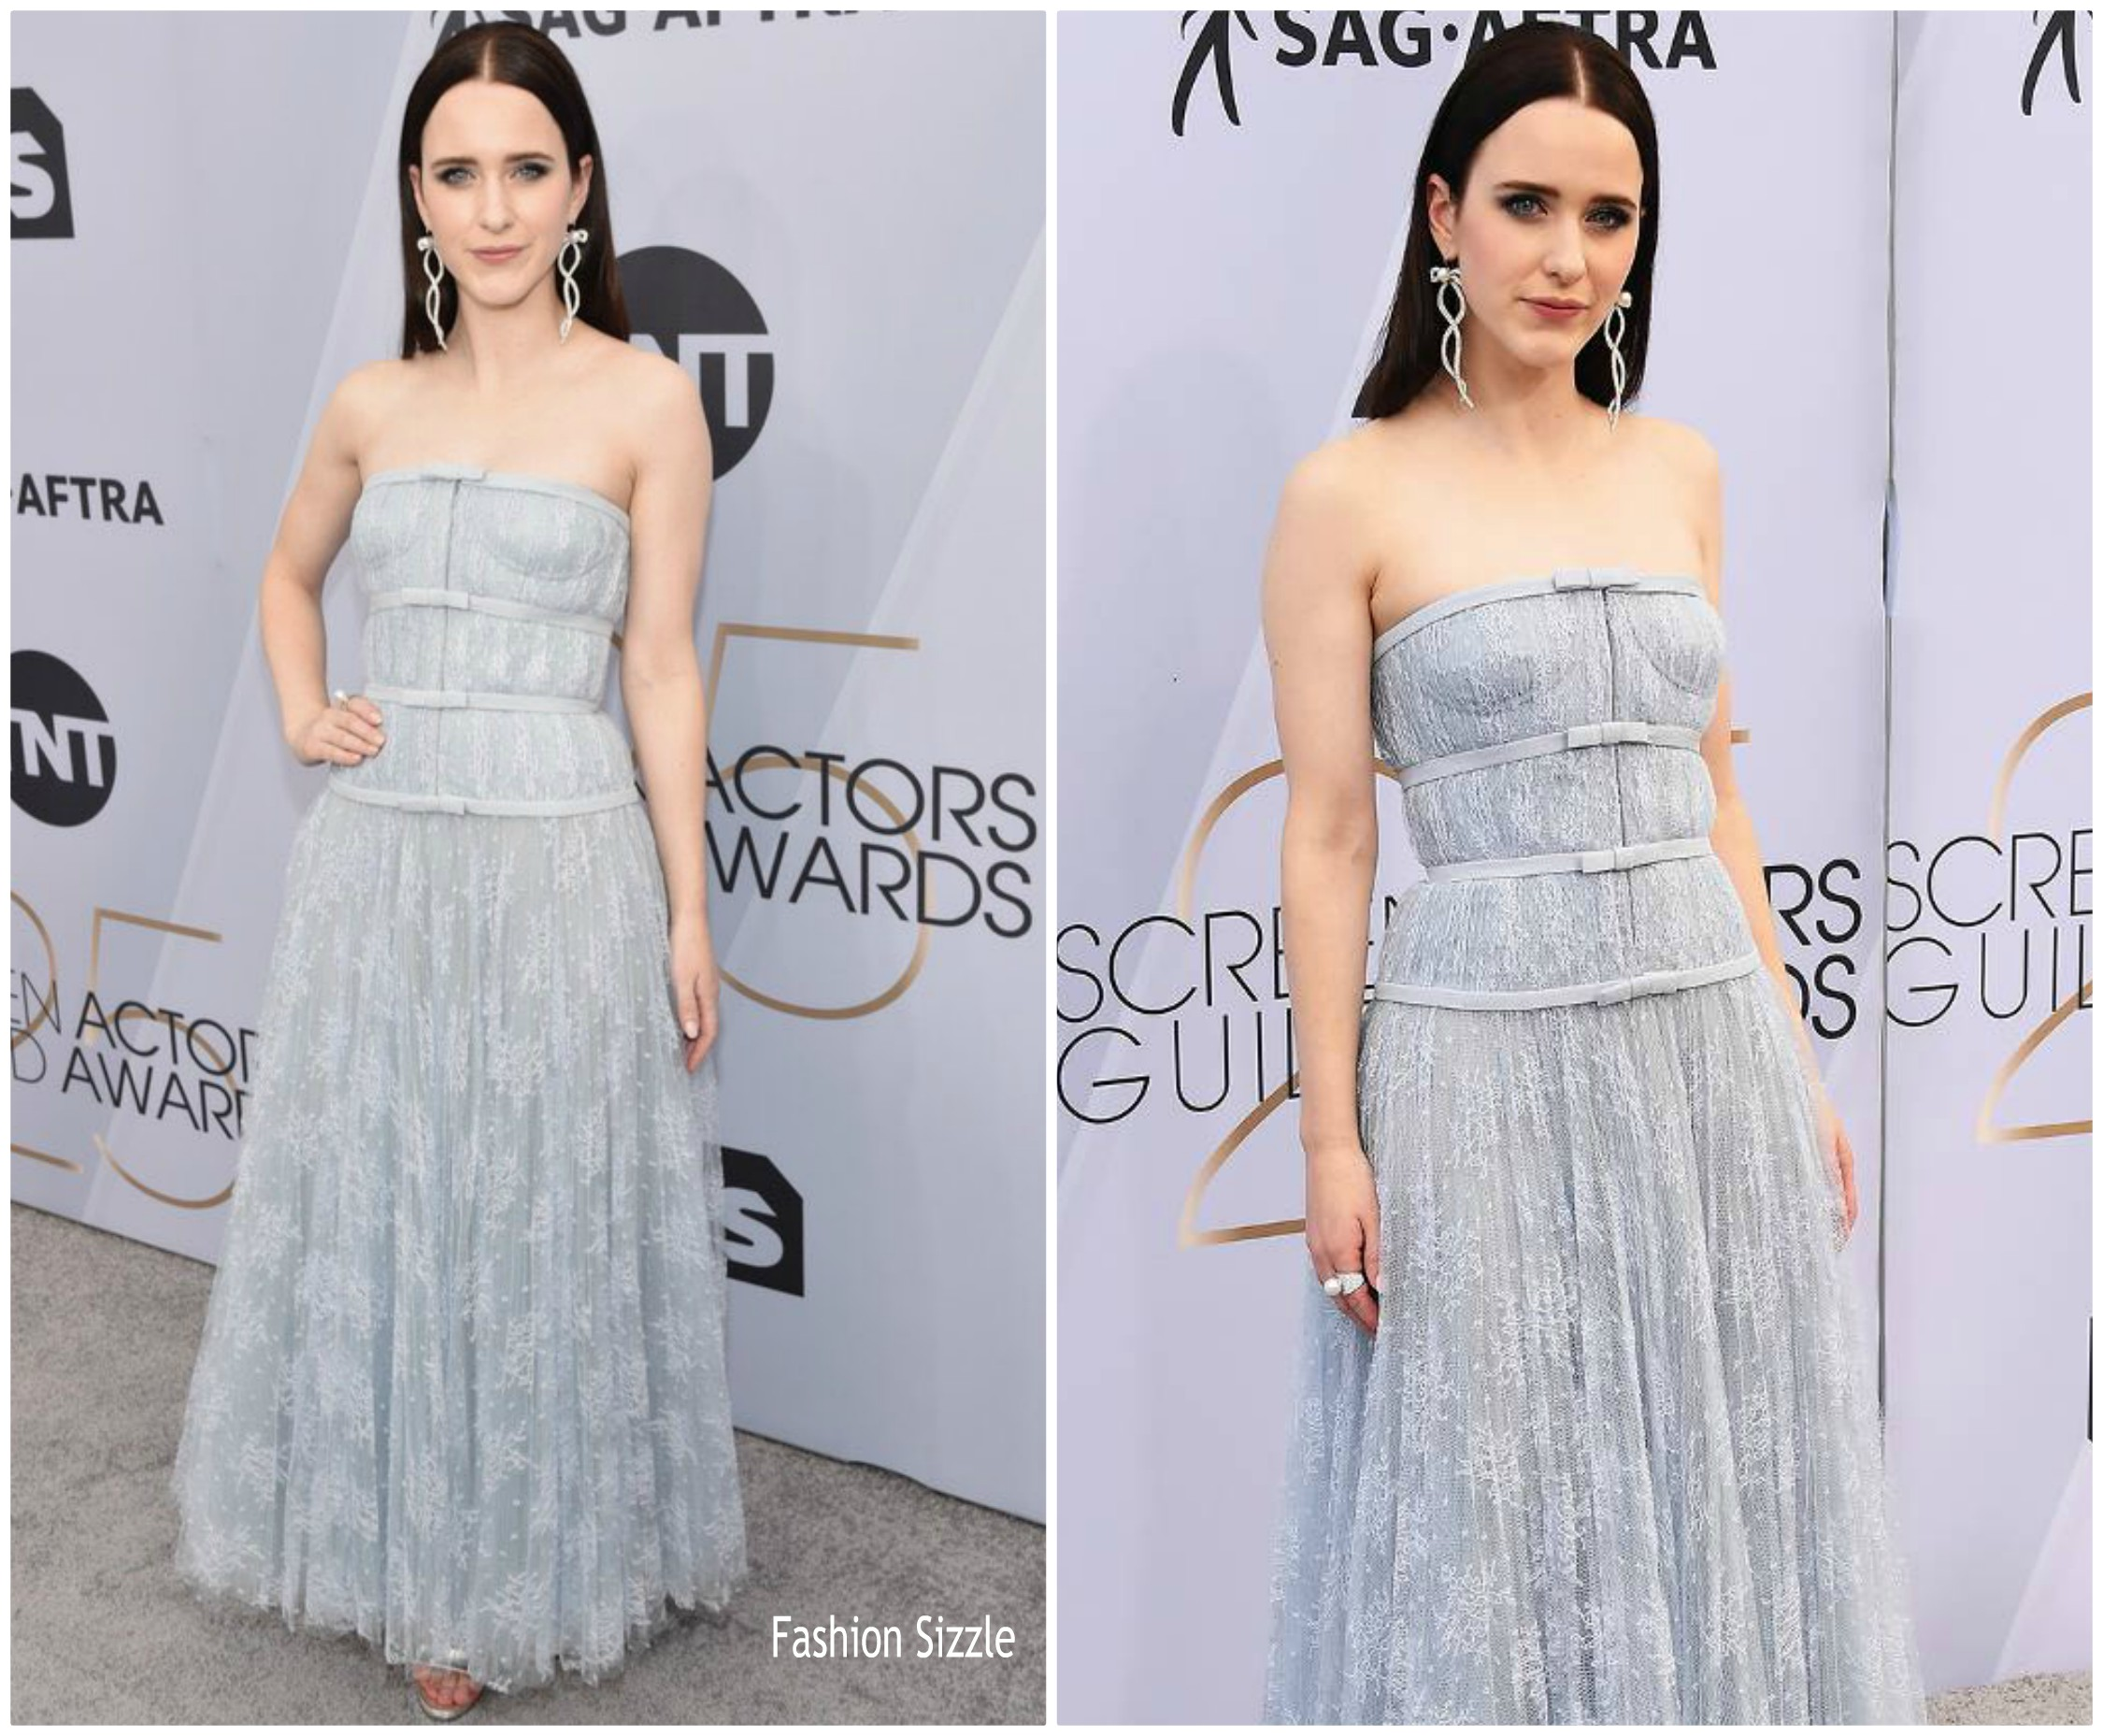 rachel-brosnahan-in-christian-dior-haute-couture-2019-sag-awards